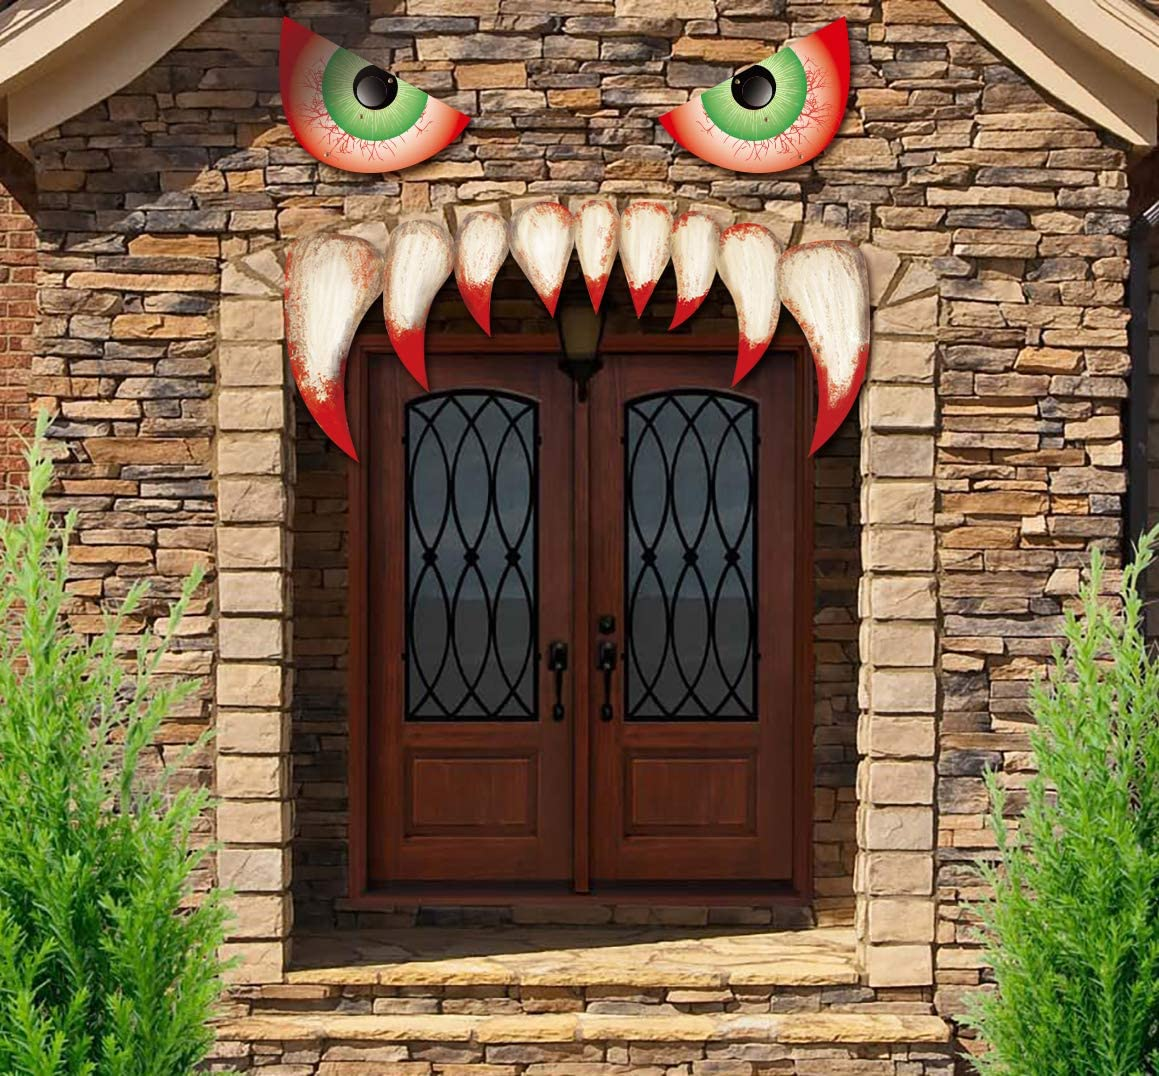 jollylife Halloween Monster Face Decorations - Outdoor Garage Door Archway Car Party Decor with Eyes Teeth Cutouts (Assembly Needed)